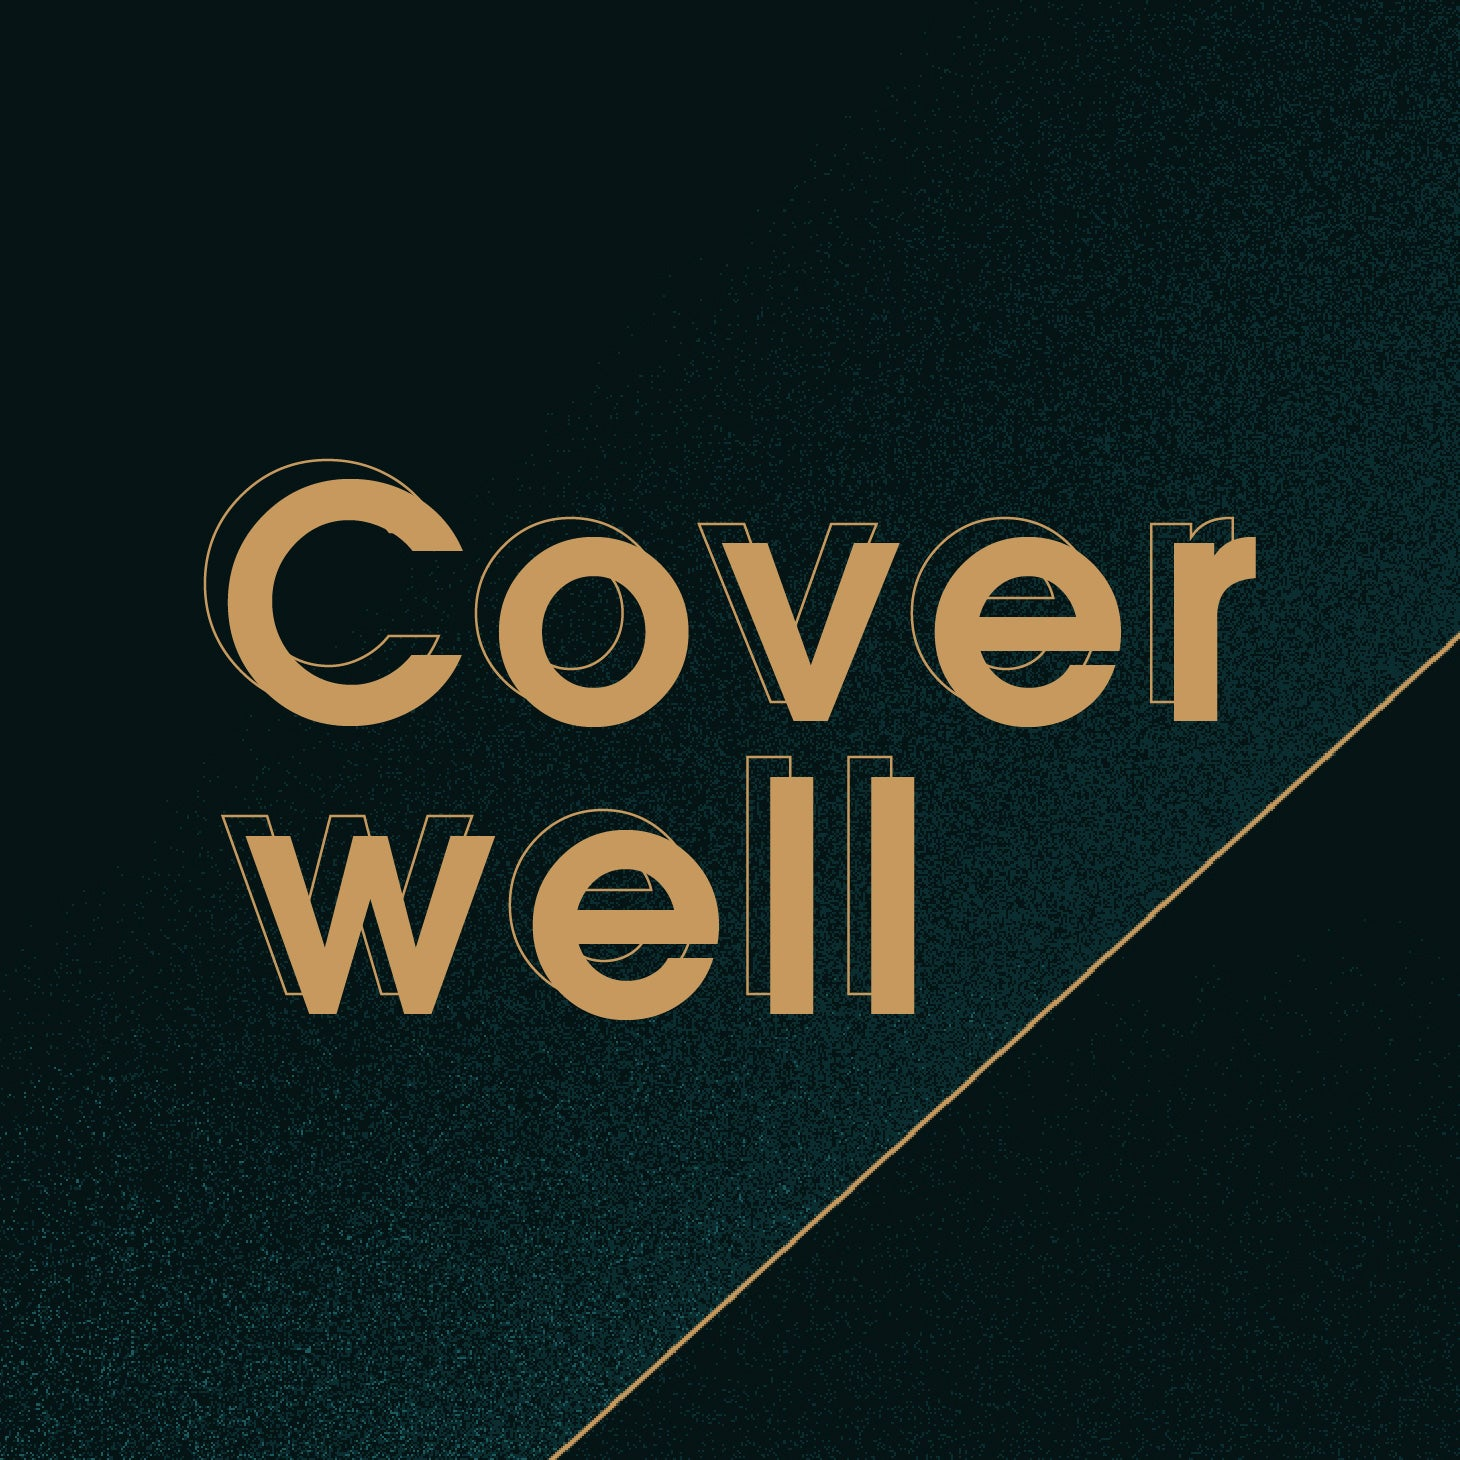 Cover Well